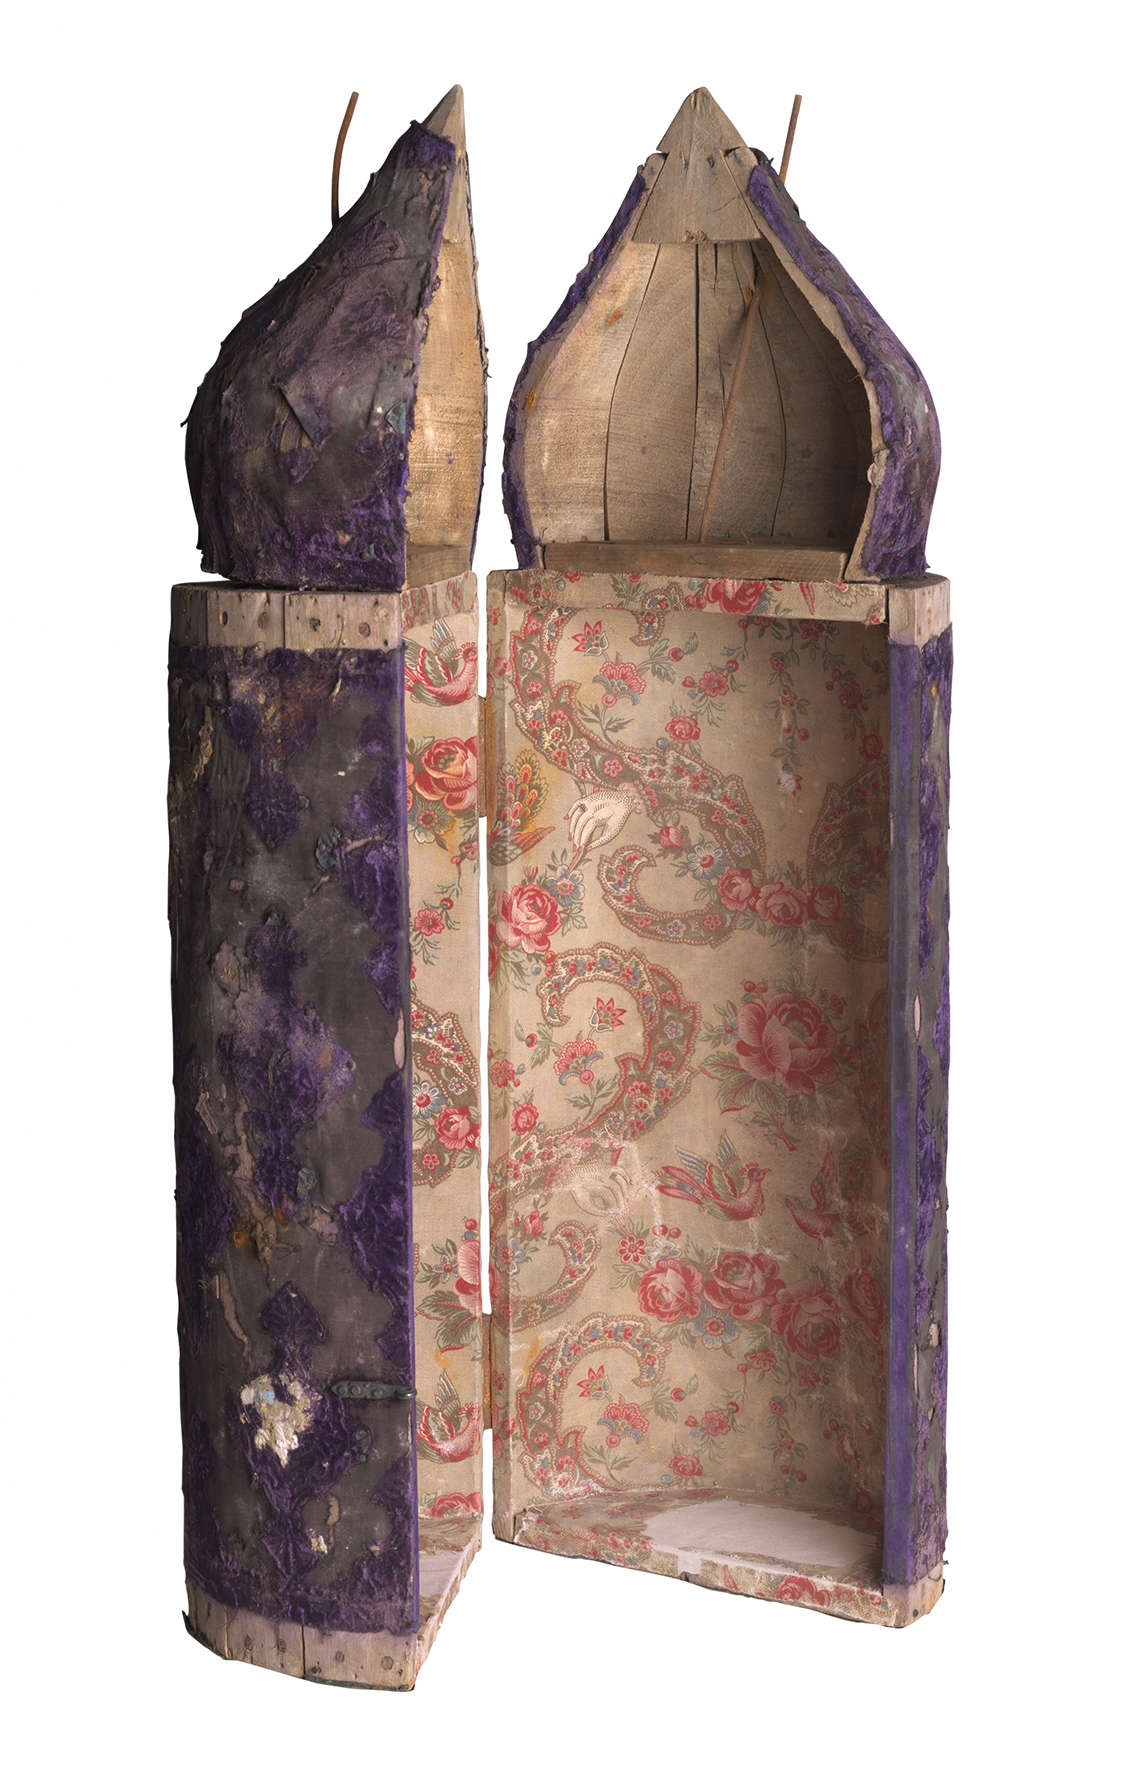 Tik (Torah case) and Glass Panel from Baghdad, 19th-20th centuries. In Jewish communities throughout the Middle East, the Torah scroll is generally housed in a rigid tik, or case made of wood or metal. (US National Archives)